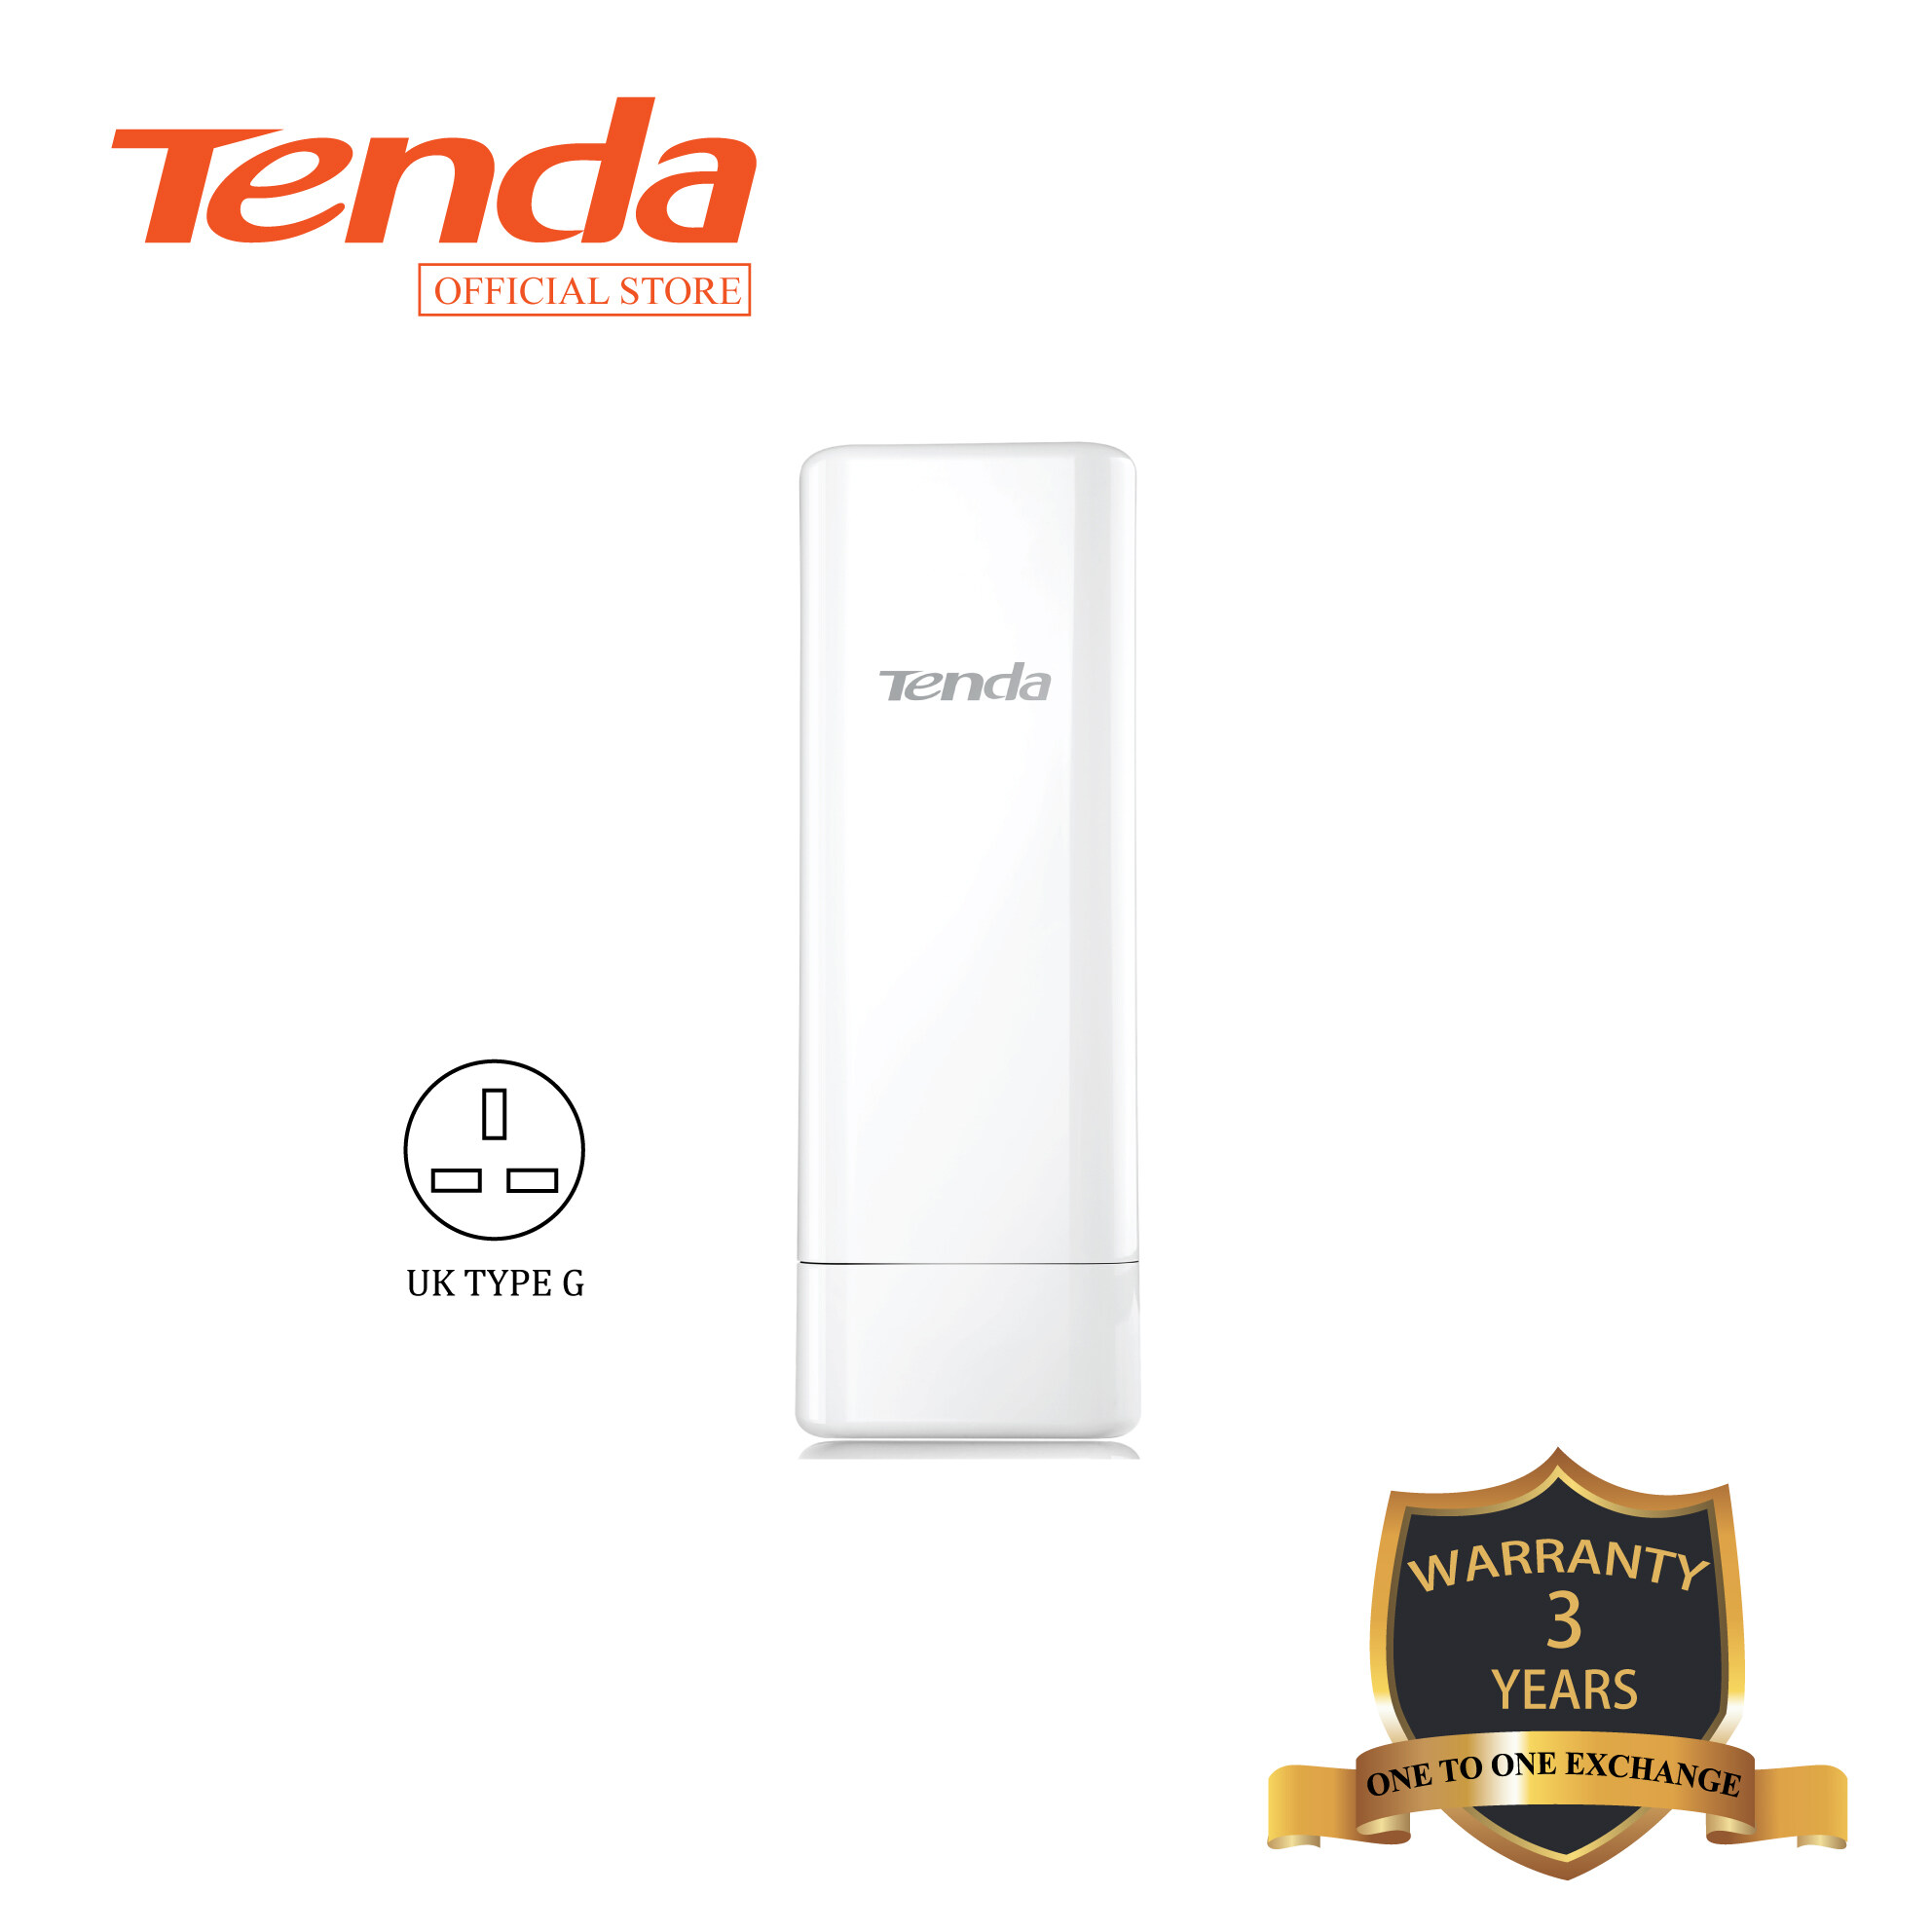 Tenda O4 Wireless 5km Point to Point Outdoor CPE WiFi Bridge- Auto Bridging - 6KV- Data Signal Transmission-CCTV Solution